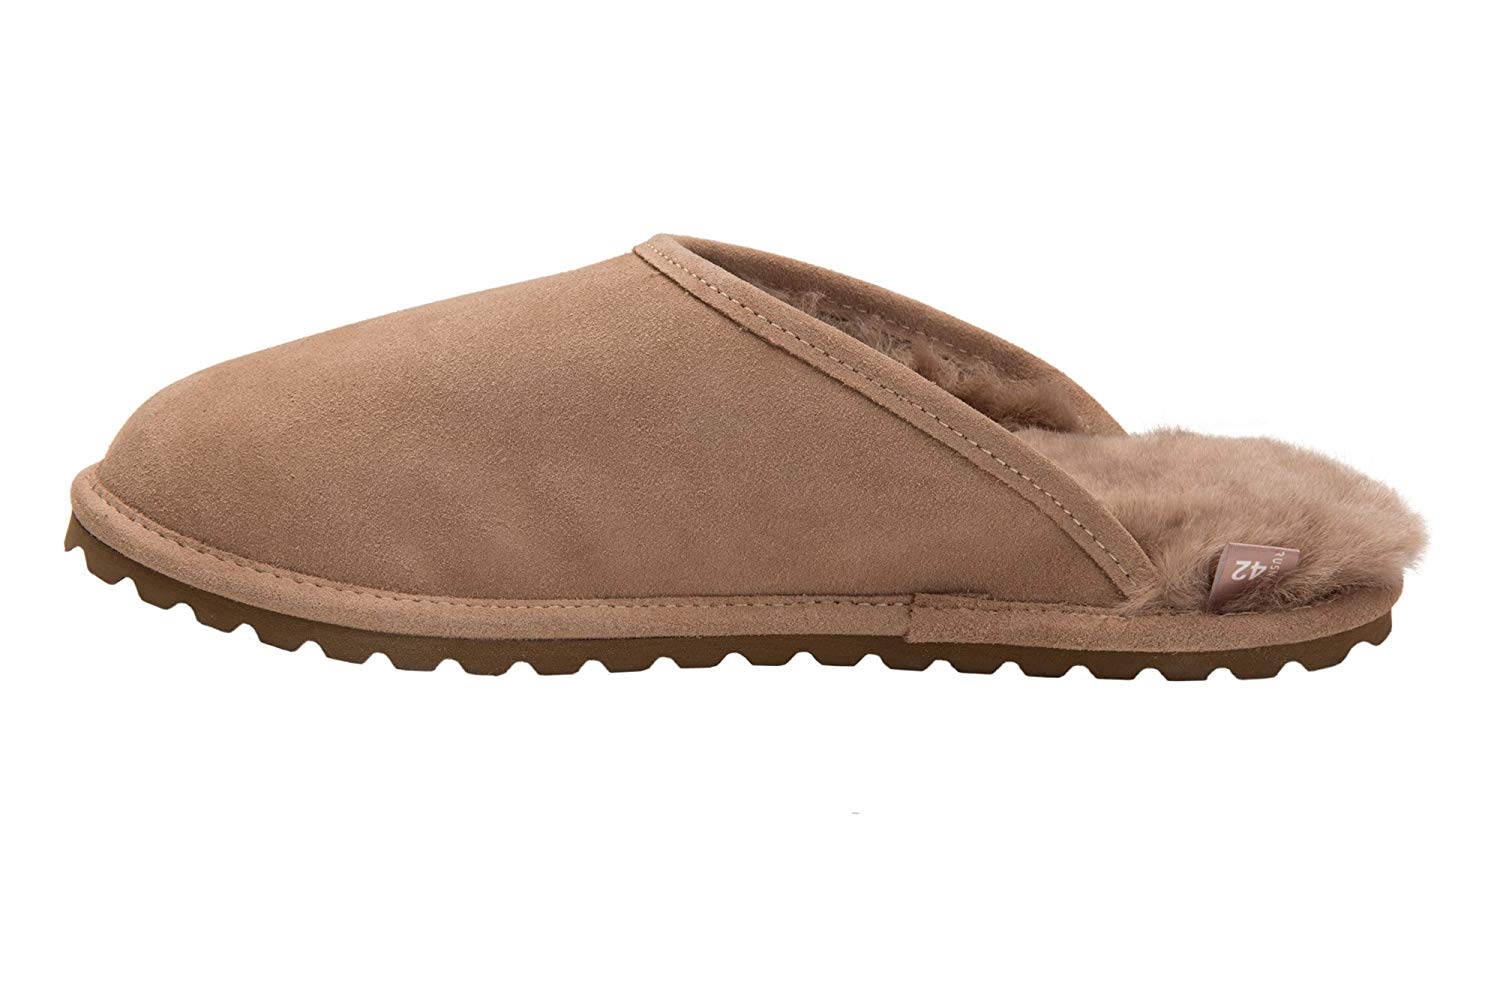 f2ea22047b95 Get Quotations · Rusnak Mens Sheepskin Leather Mule Slippers House Shoes  with Warm Wool Lining M68P